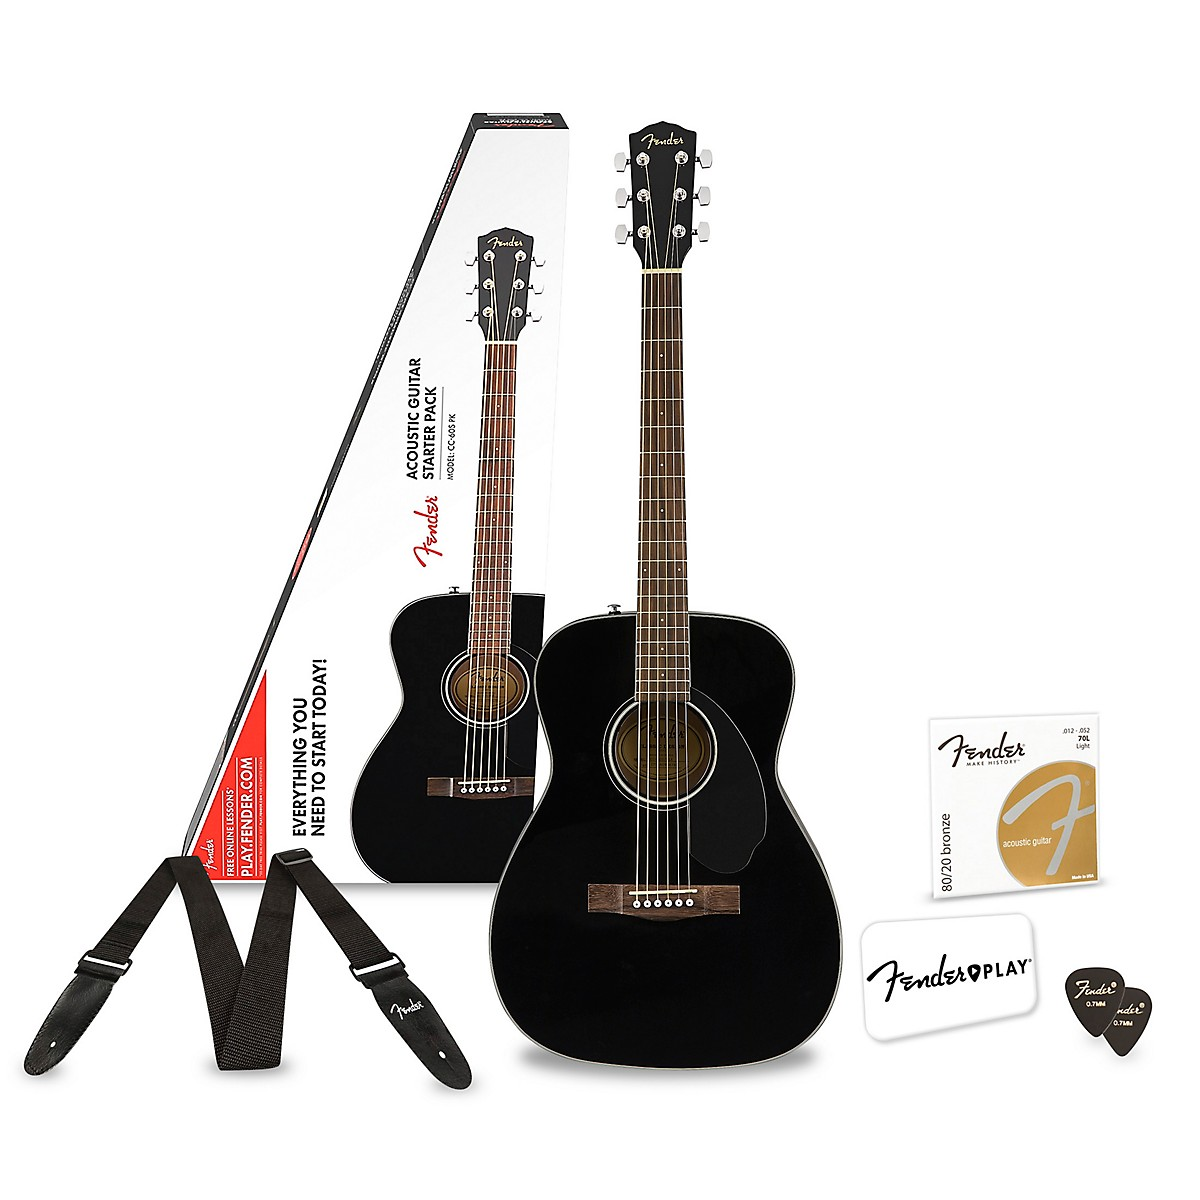 Fender CC-60S Concert Acoustic Guitar Pack With 3 Free Months Fender Play